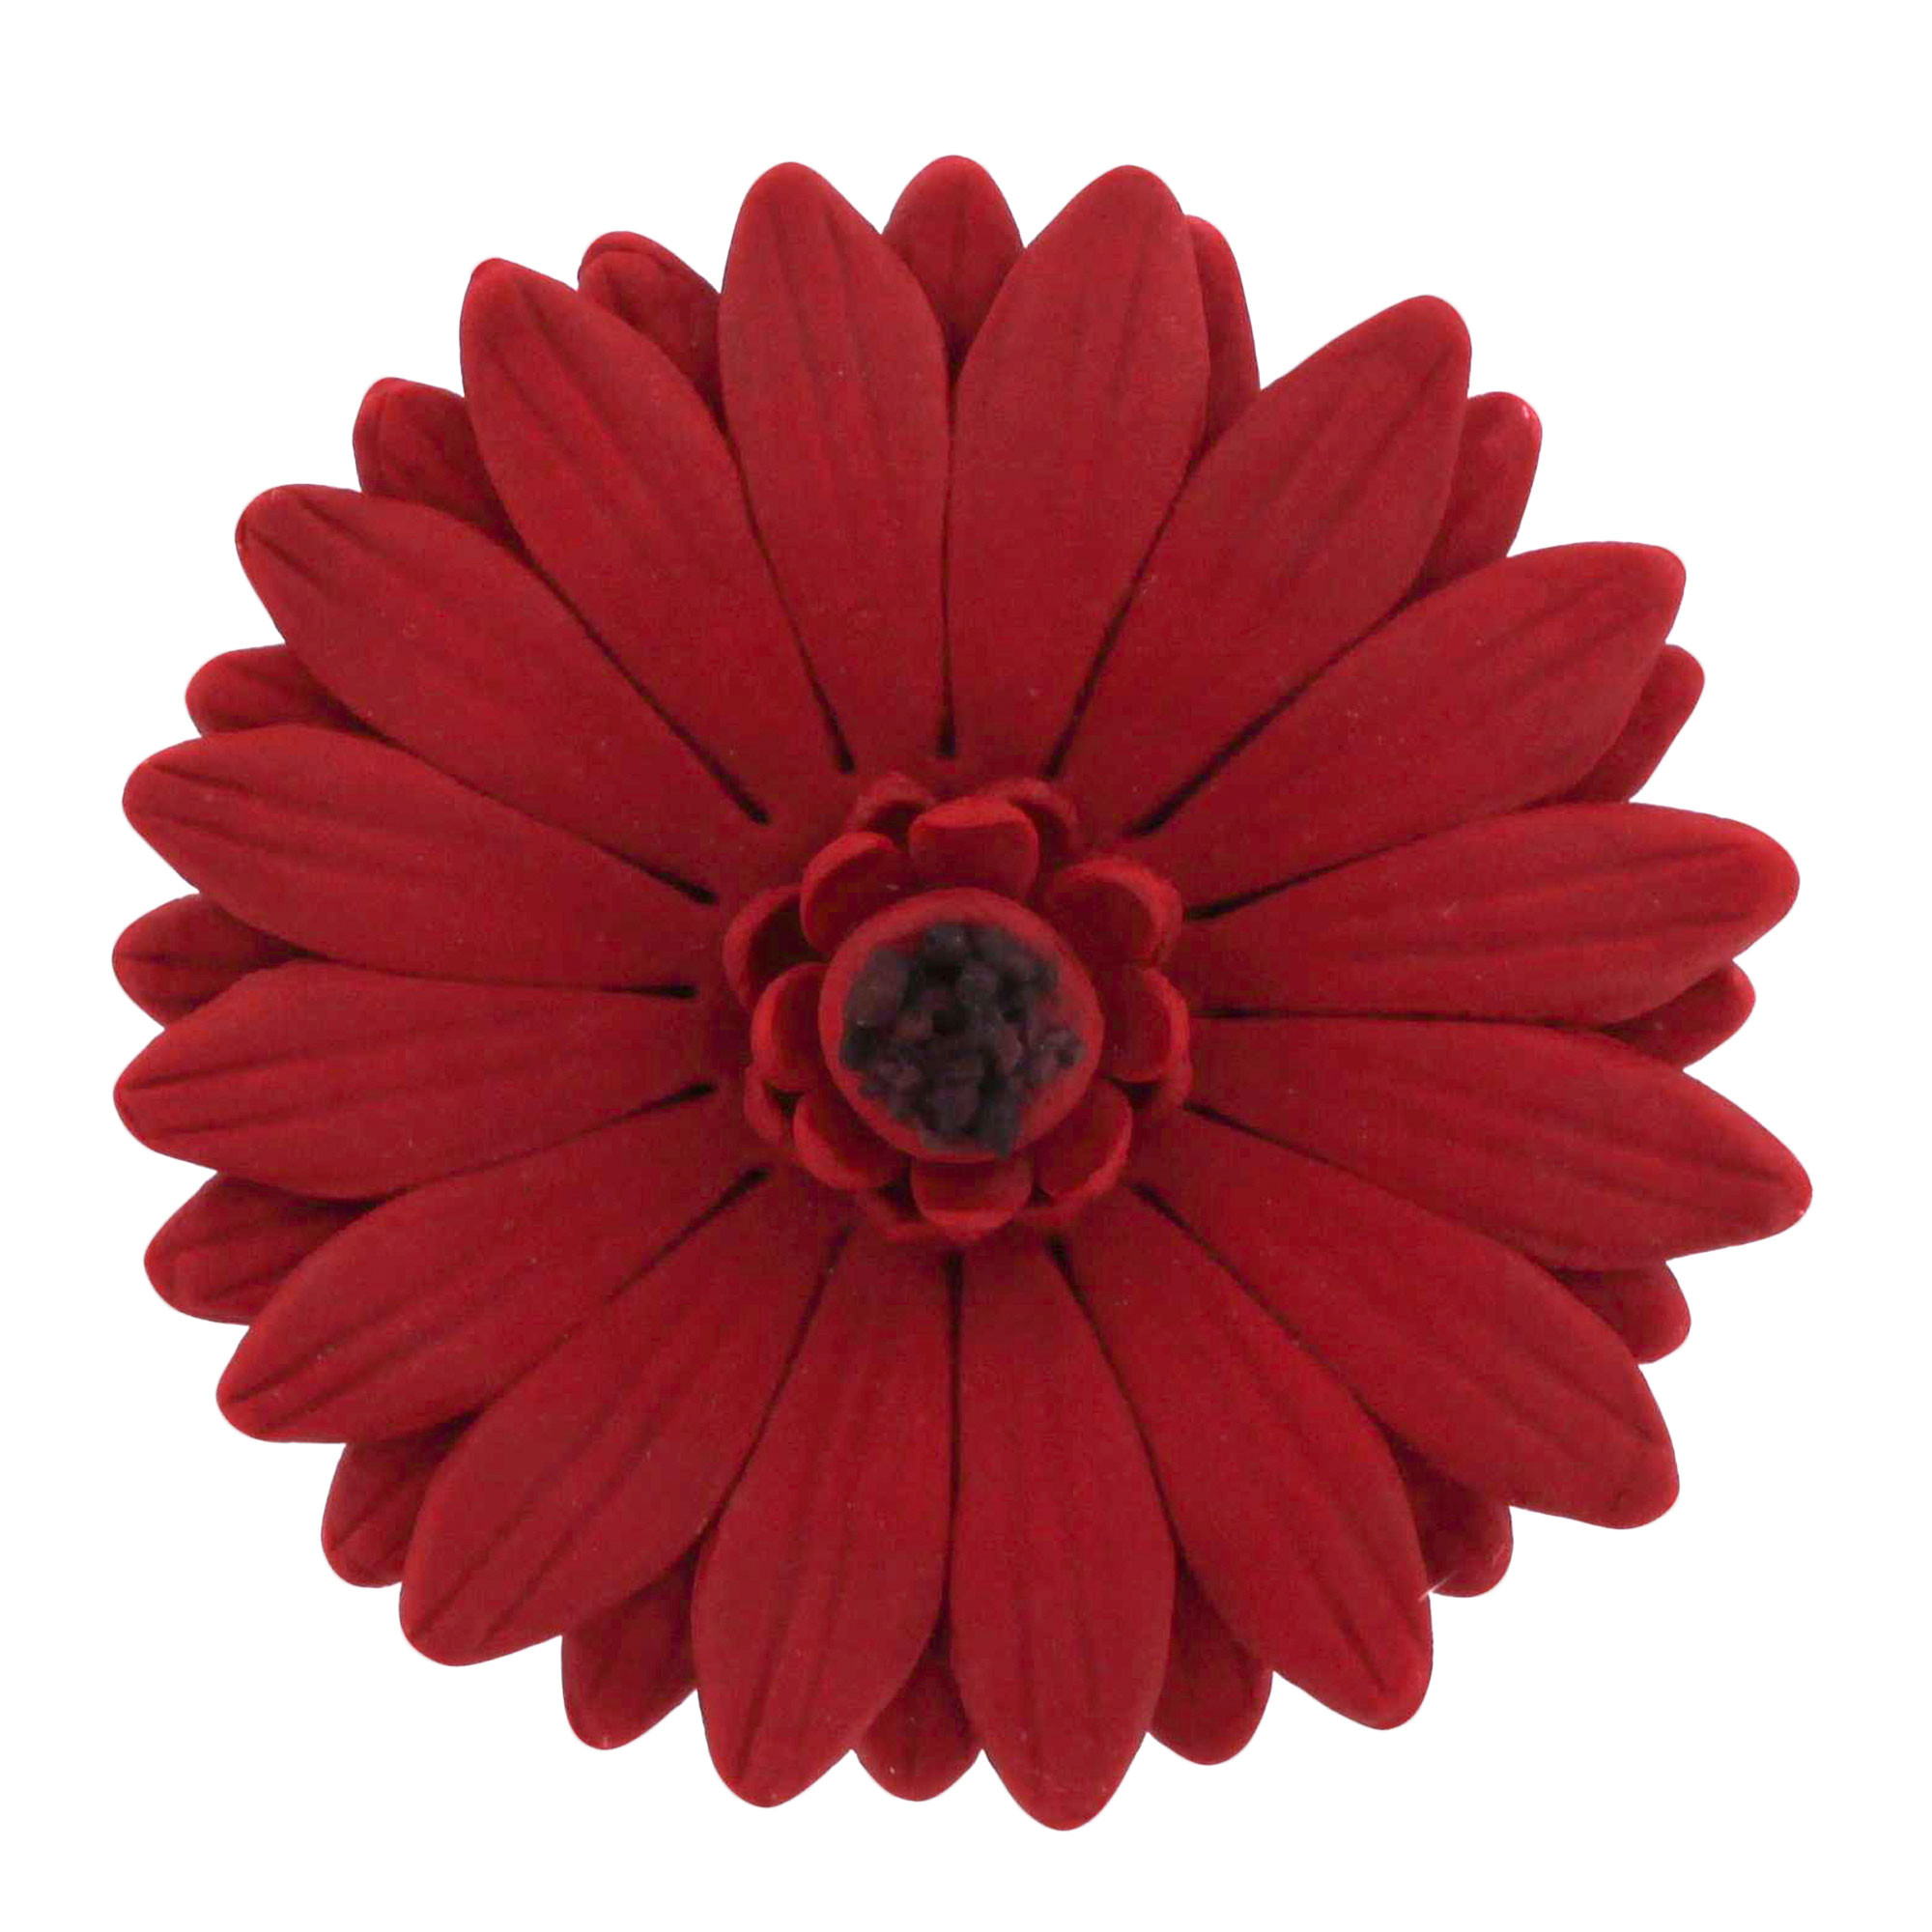 Gerbera Daisy Deep Red, 8 Count by Chef Alan Tetreault Daisies